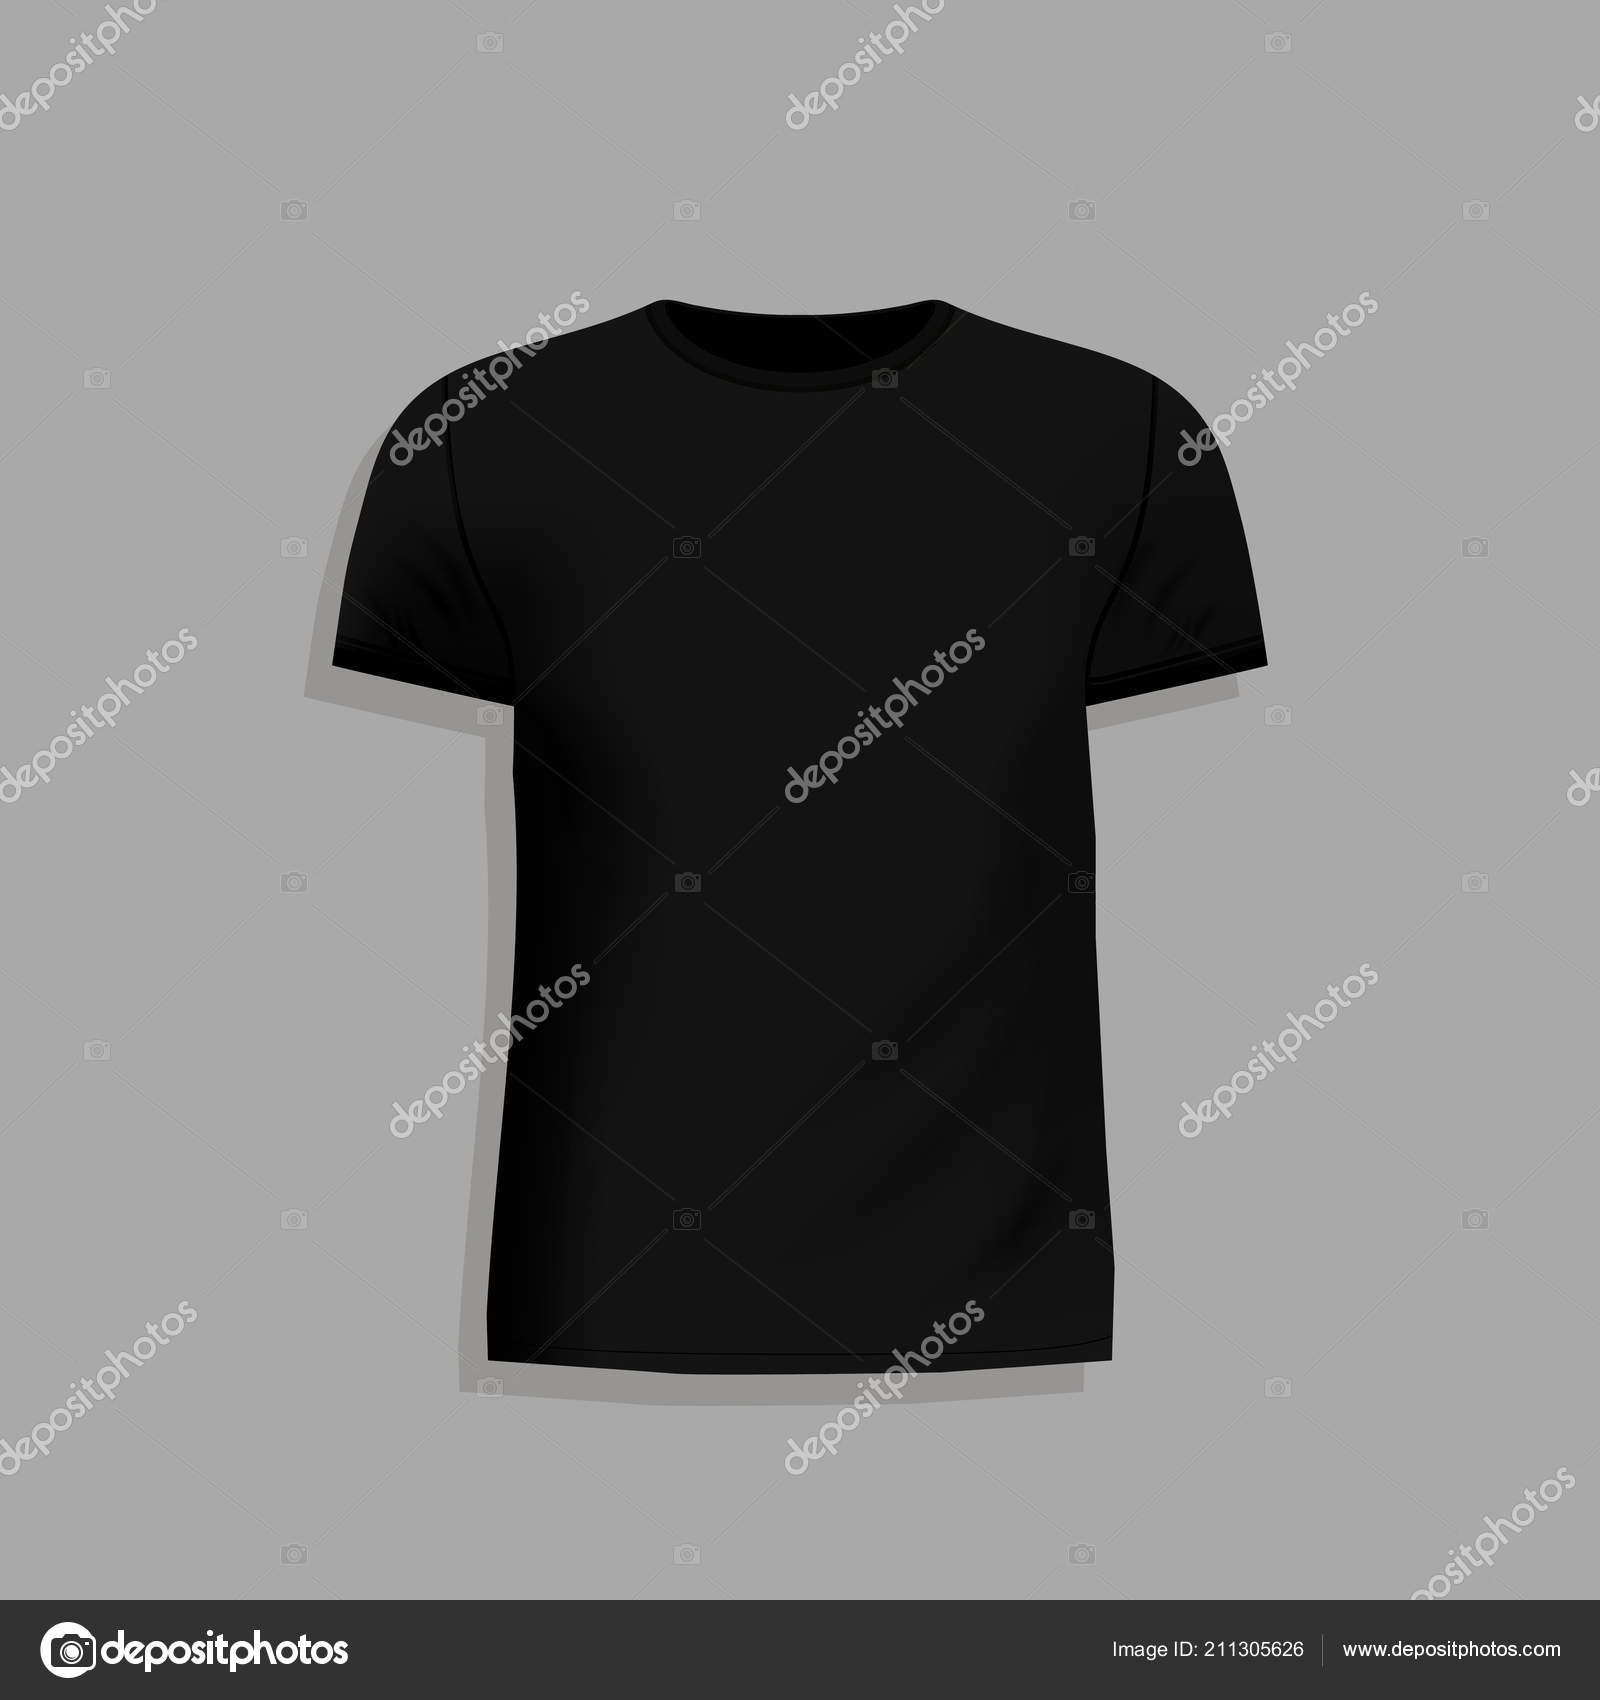 96529dac Men Black Shirt Design Template Gray Background Mock Template Tshirt — Stock  Vector